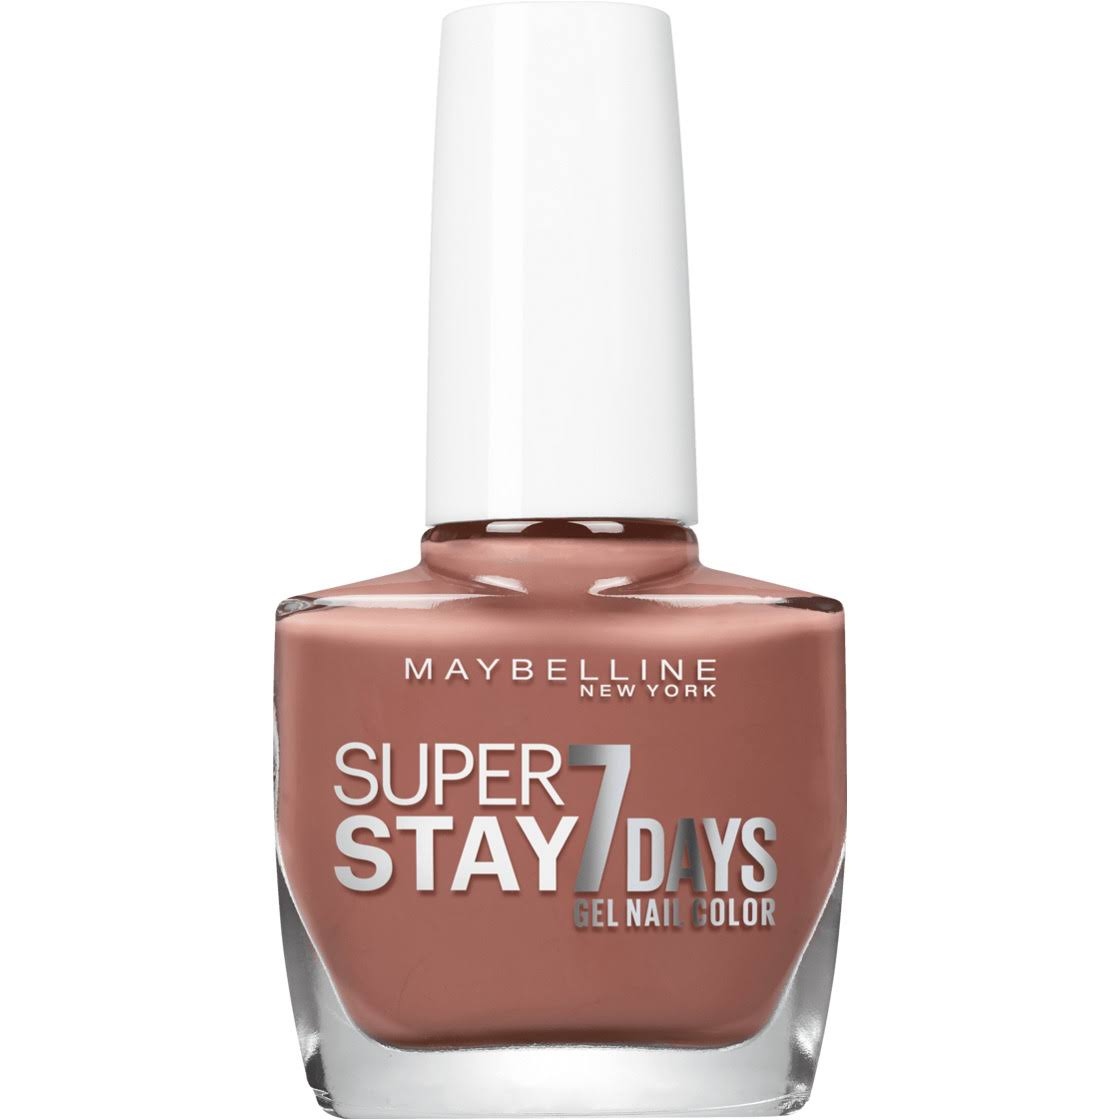 Maybelline Superstay 7 Days City Nudes Nail Polish - Brick Tan, 49g